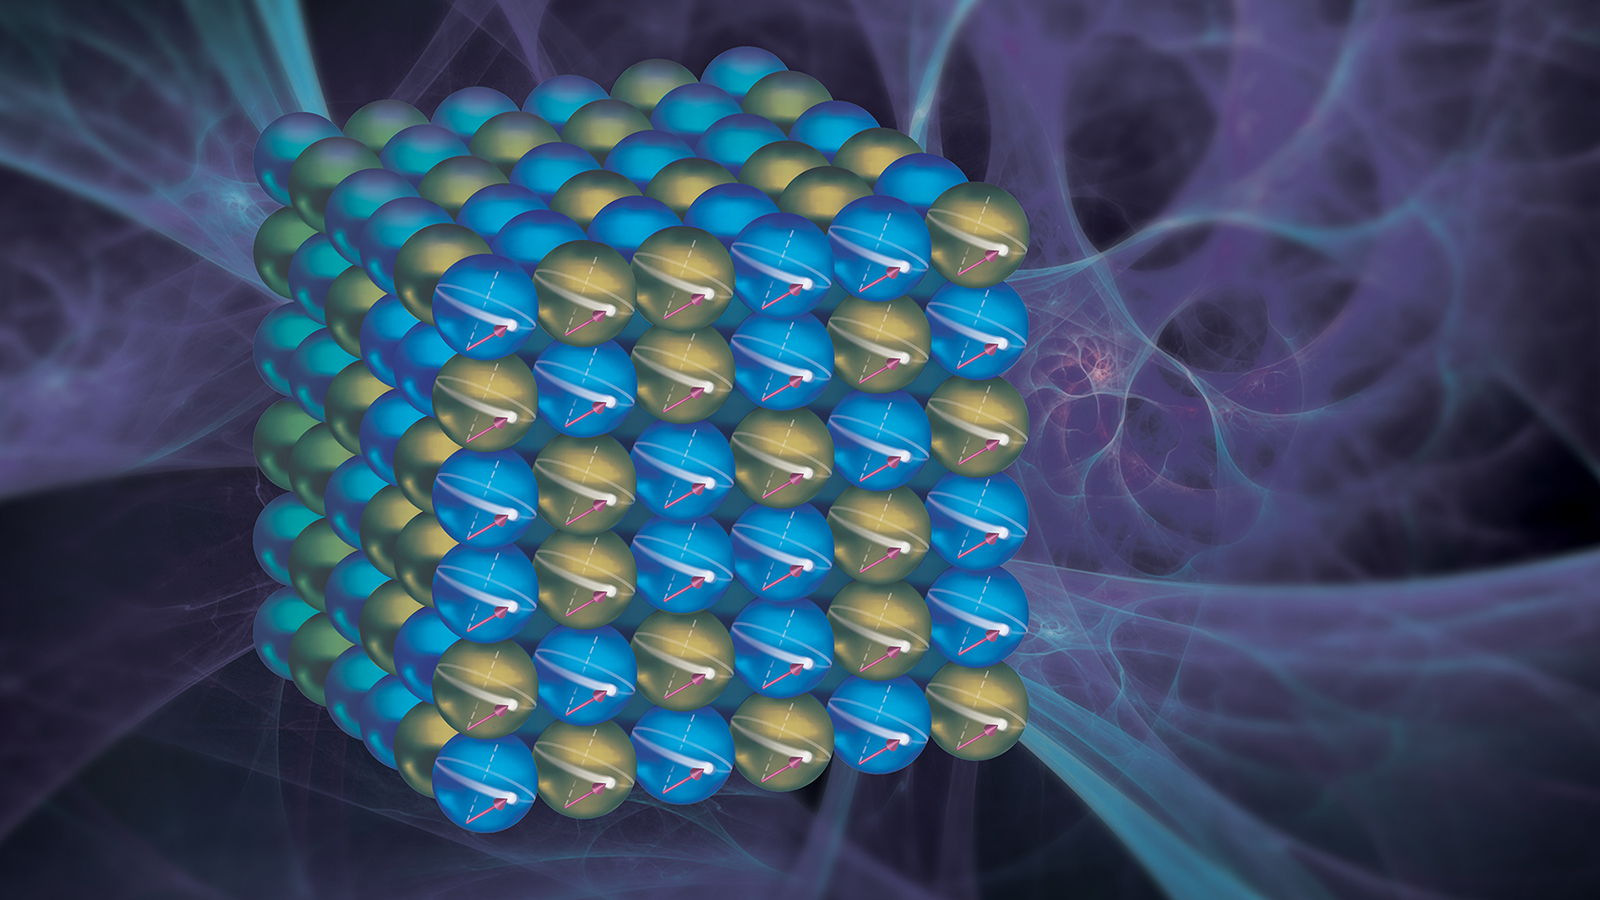 Researchers at Argonne have discovered a way to control the direction of electron spin in a cobalt-iron alloy, influencing its magnetic properties. The result could have implications for more powerful and energy-efficient materials for information storage. (Image by Argonne National Laboratory.)